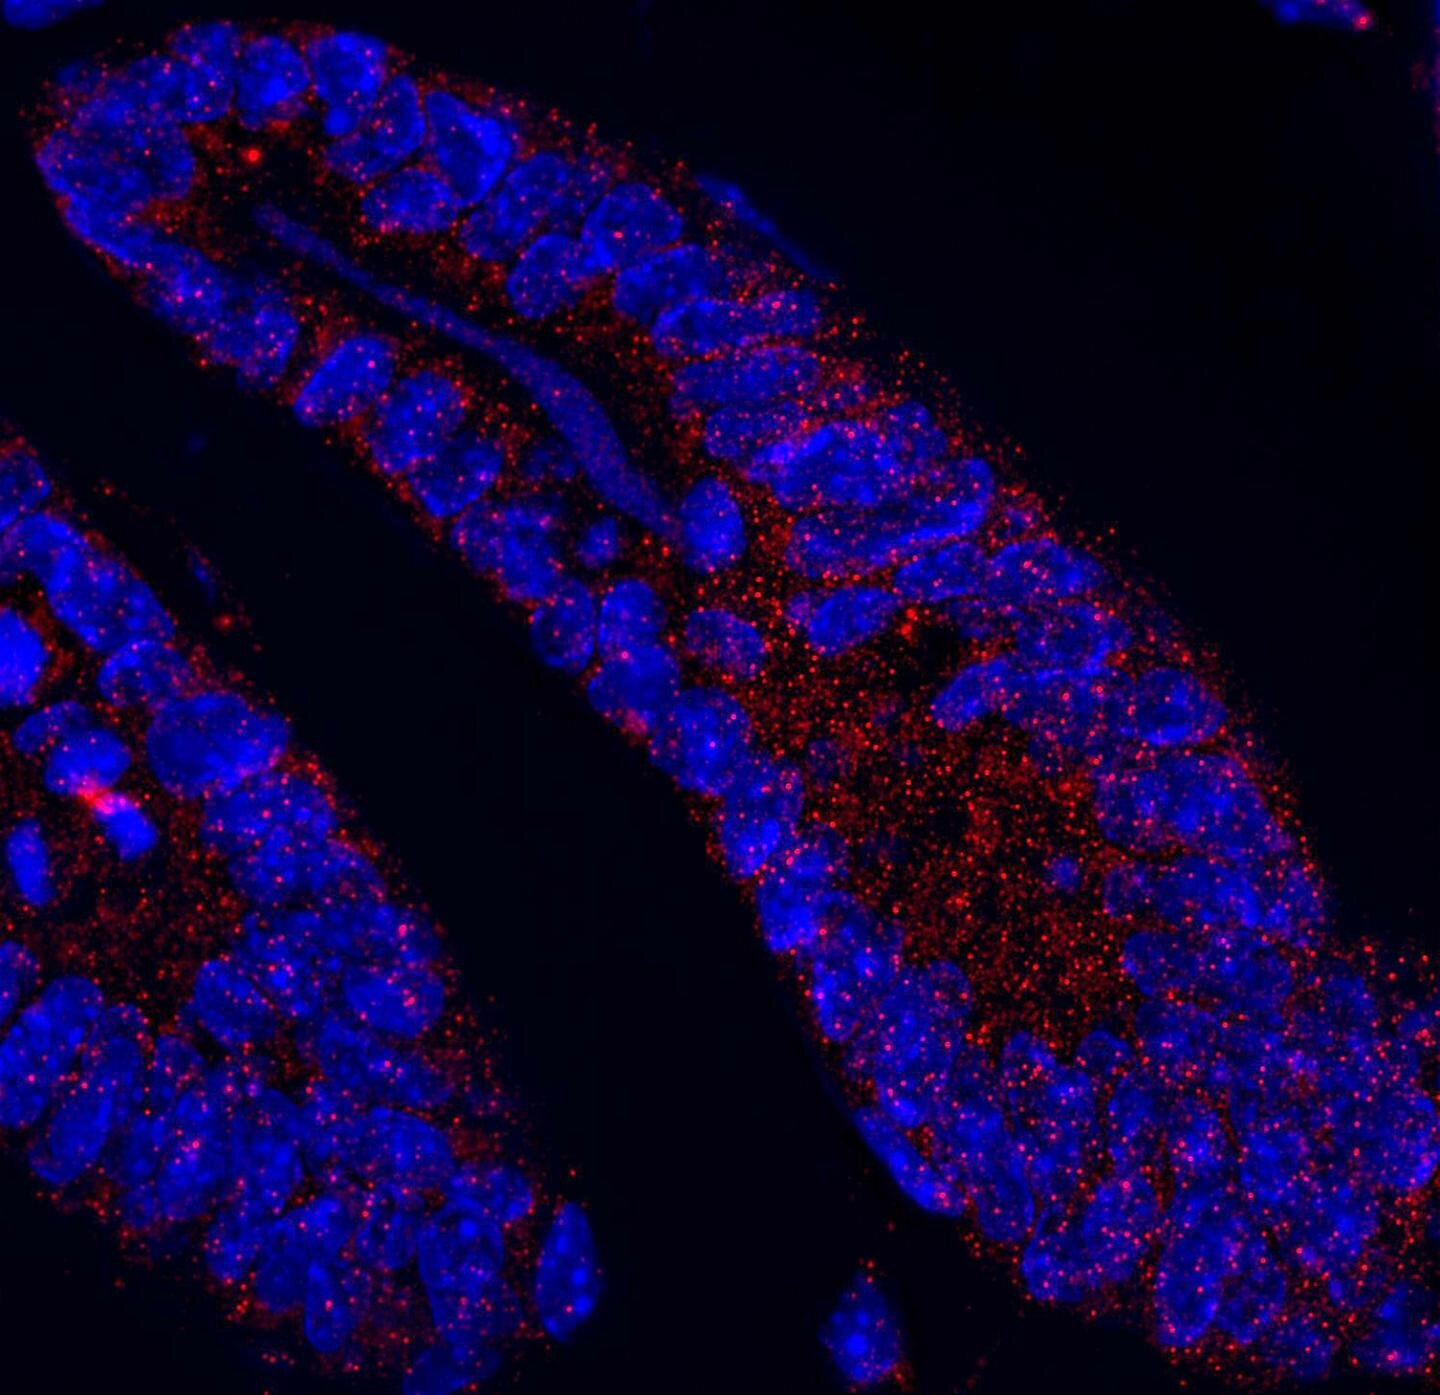 Protein loss disturbs intestinal homeostasis and can drive cancer